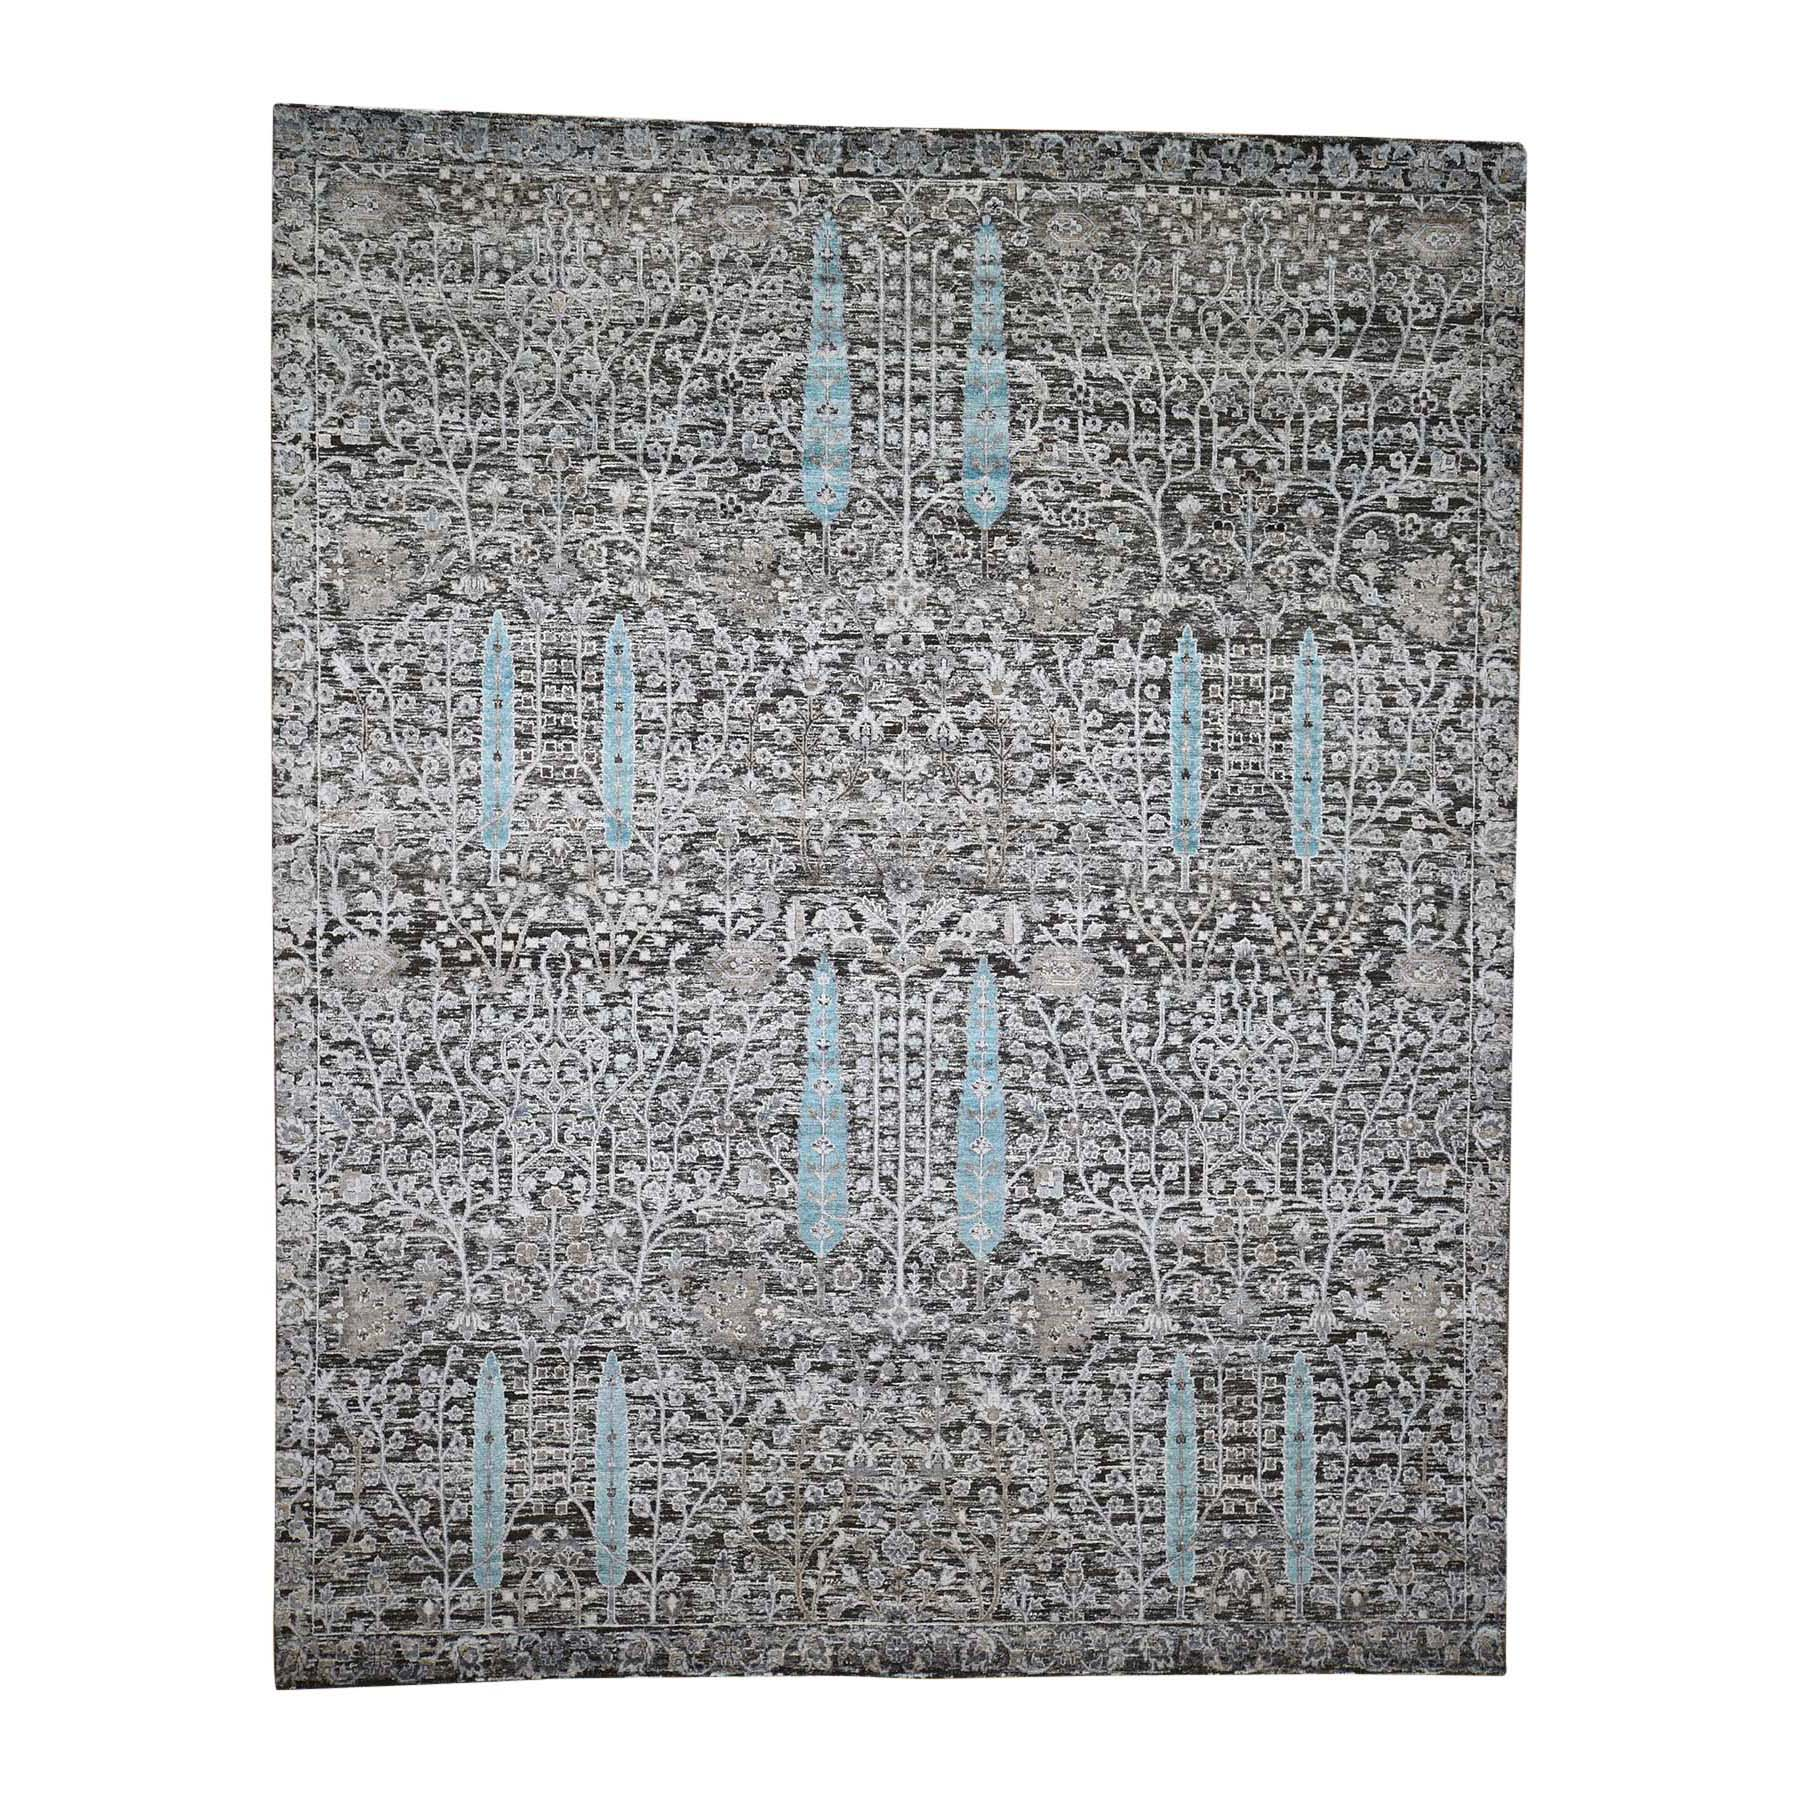 Pirniakan Collection Hand Knotted Grey Rug No: 0192334